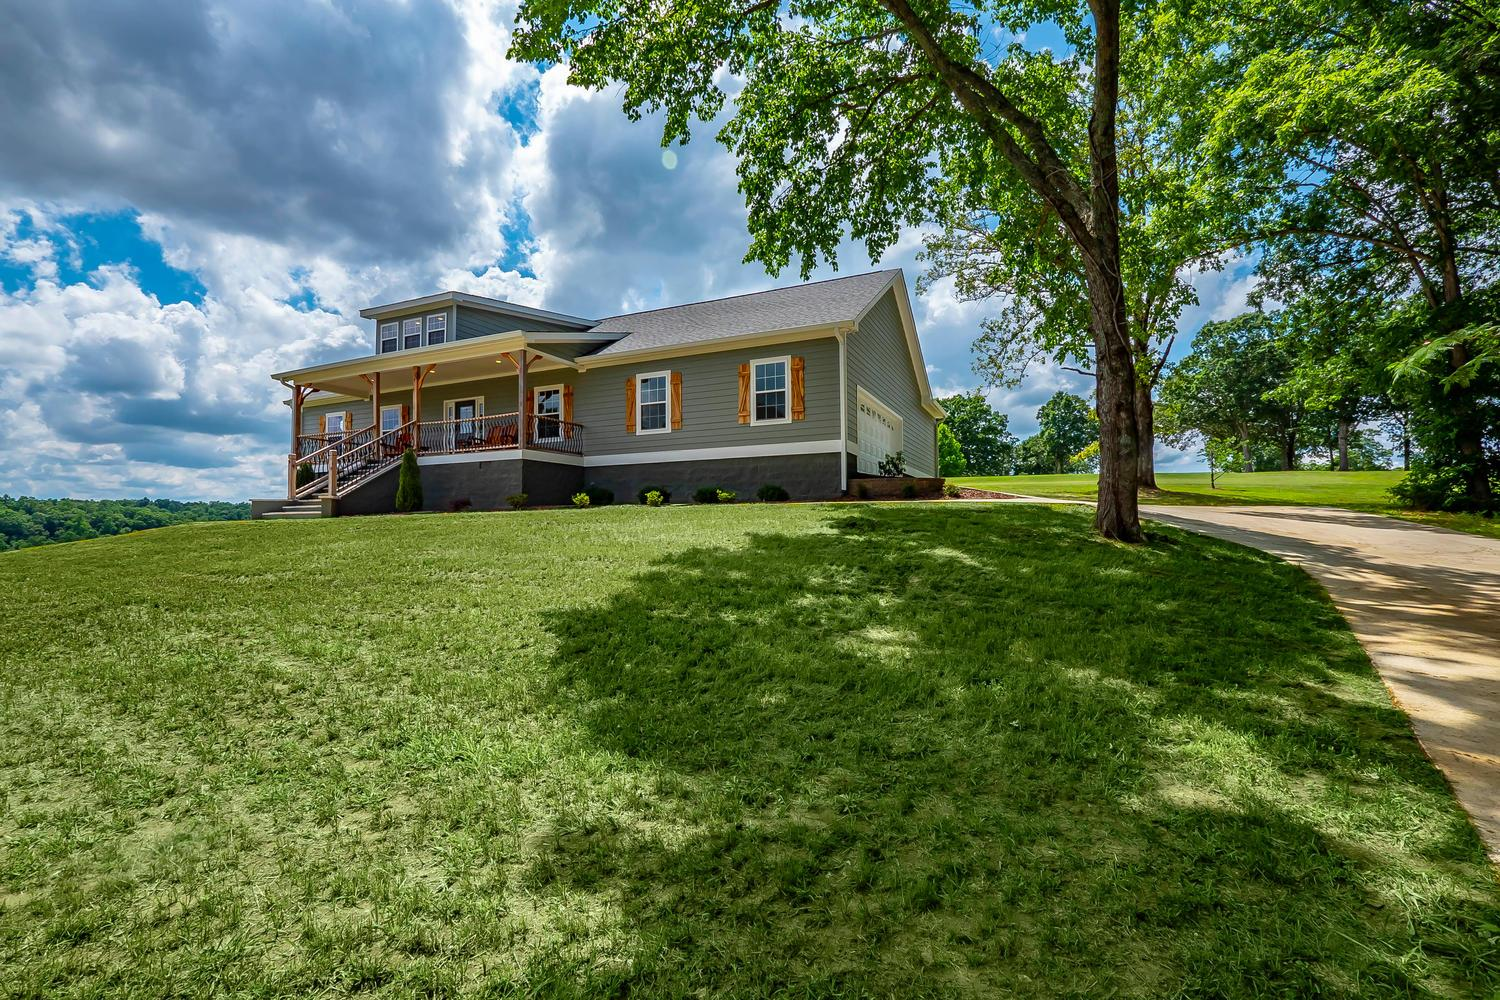 67 Lakeview Dr, Summertown, TN 38483 - Summertown, TN real estate listing